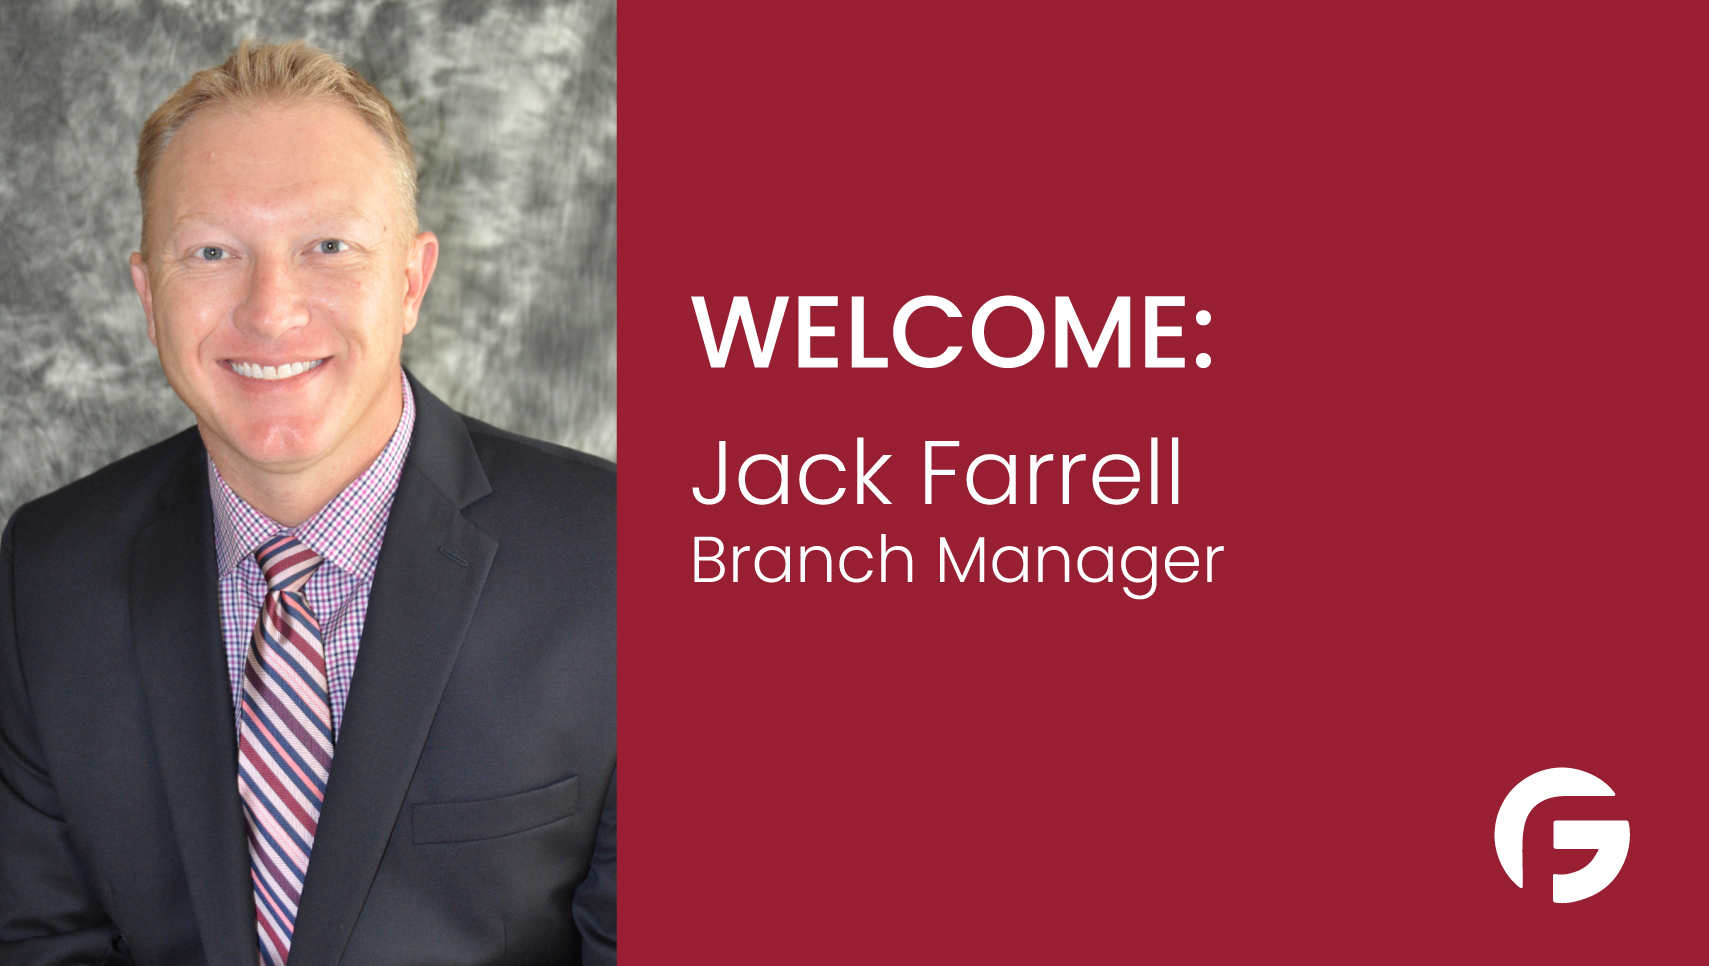 Jack Farrell Branch Manager serving Illinois and Indiana